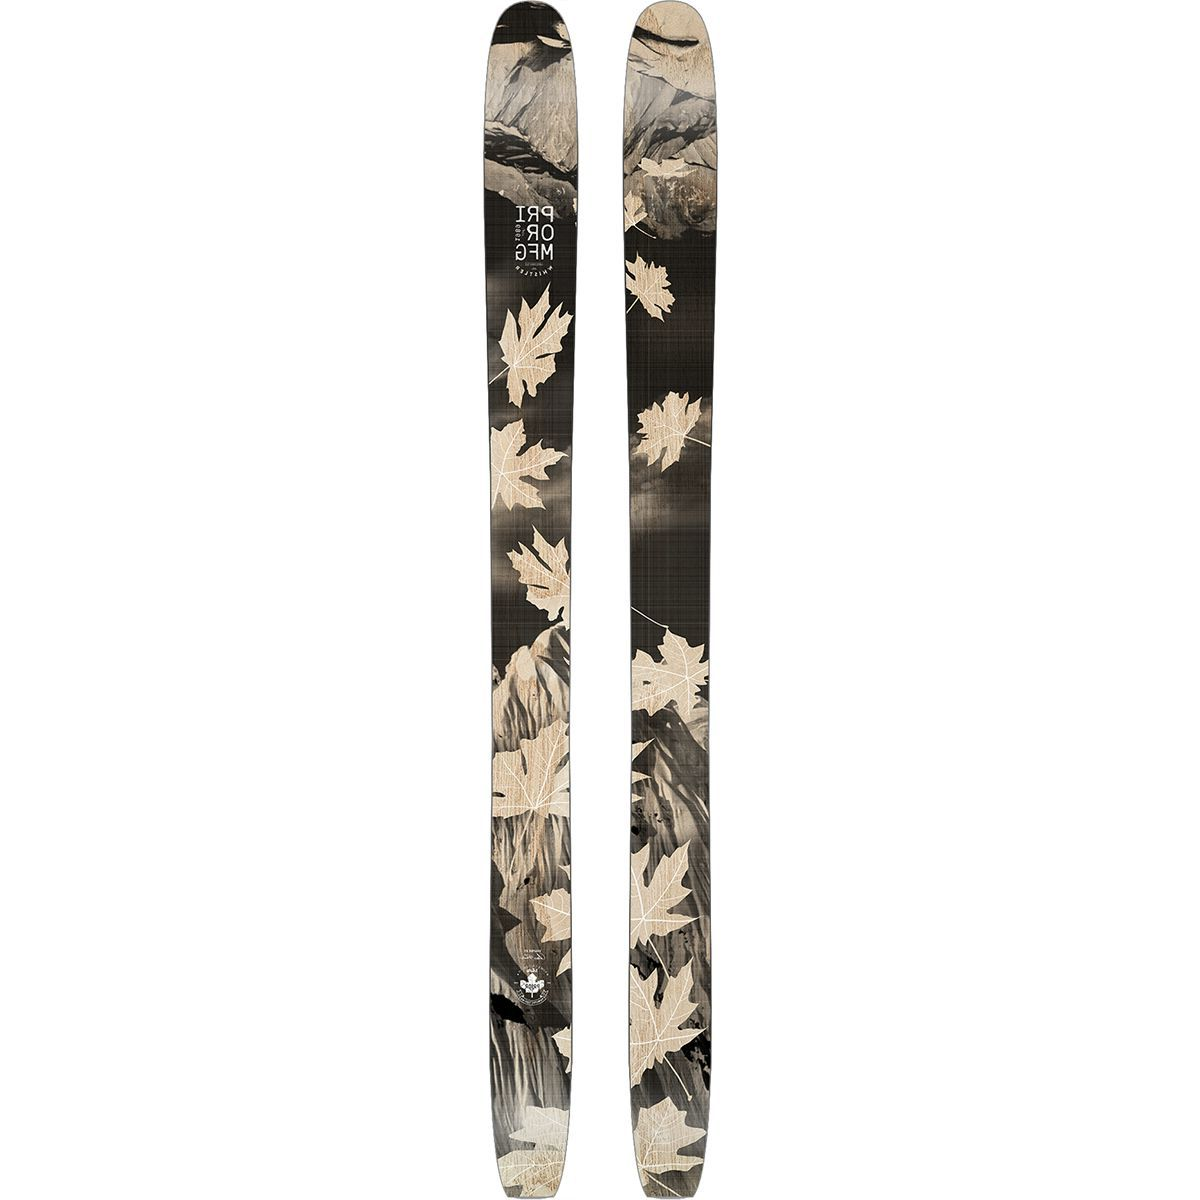 Prior A-Star - XTC Carbon Ski - Men's